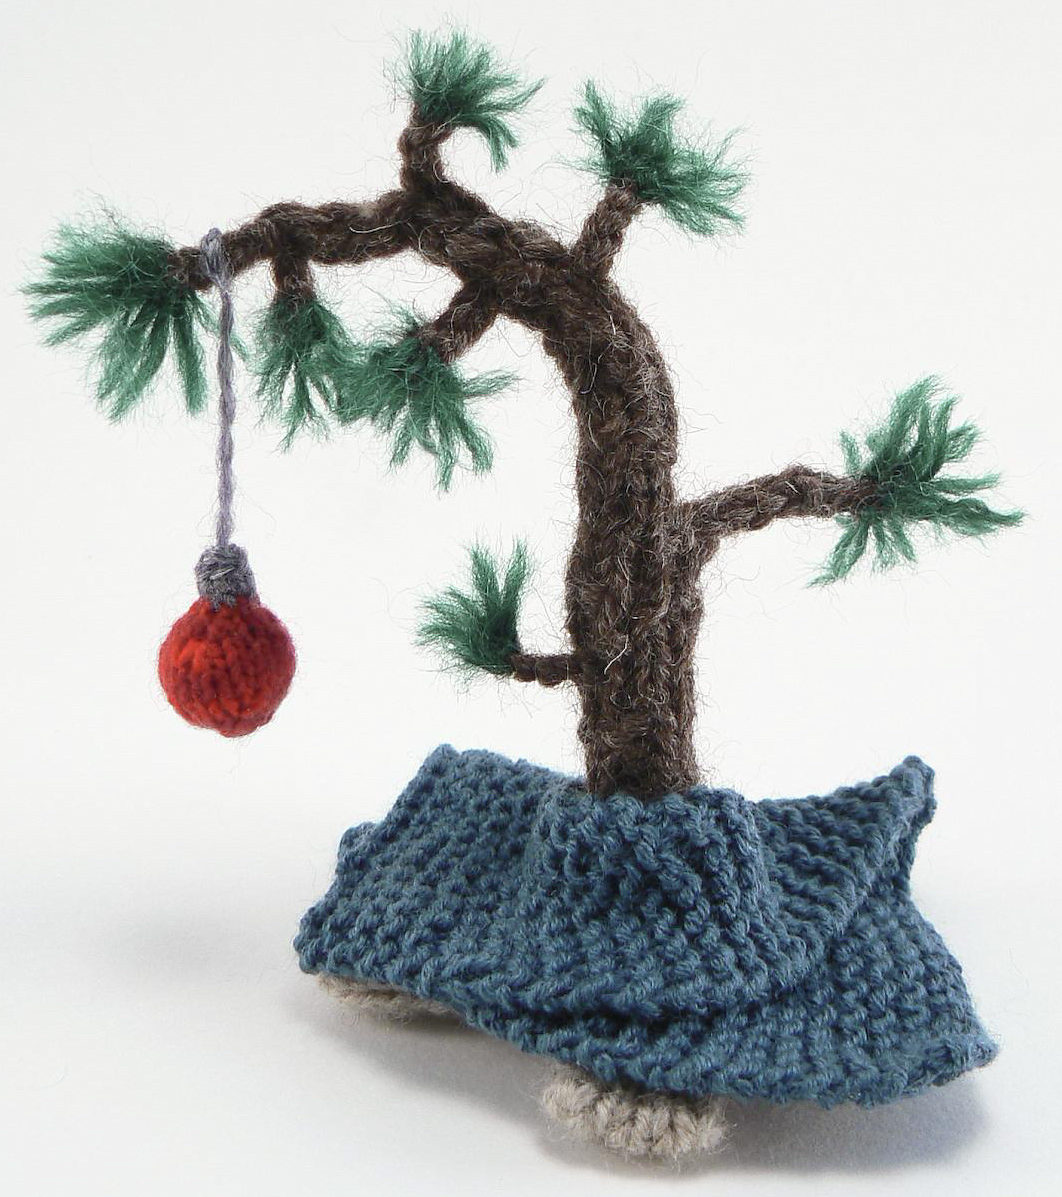 Knitting Pattern for Charlie Brown's Christmas Tree